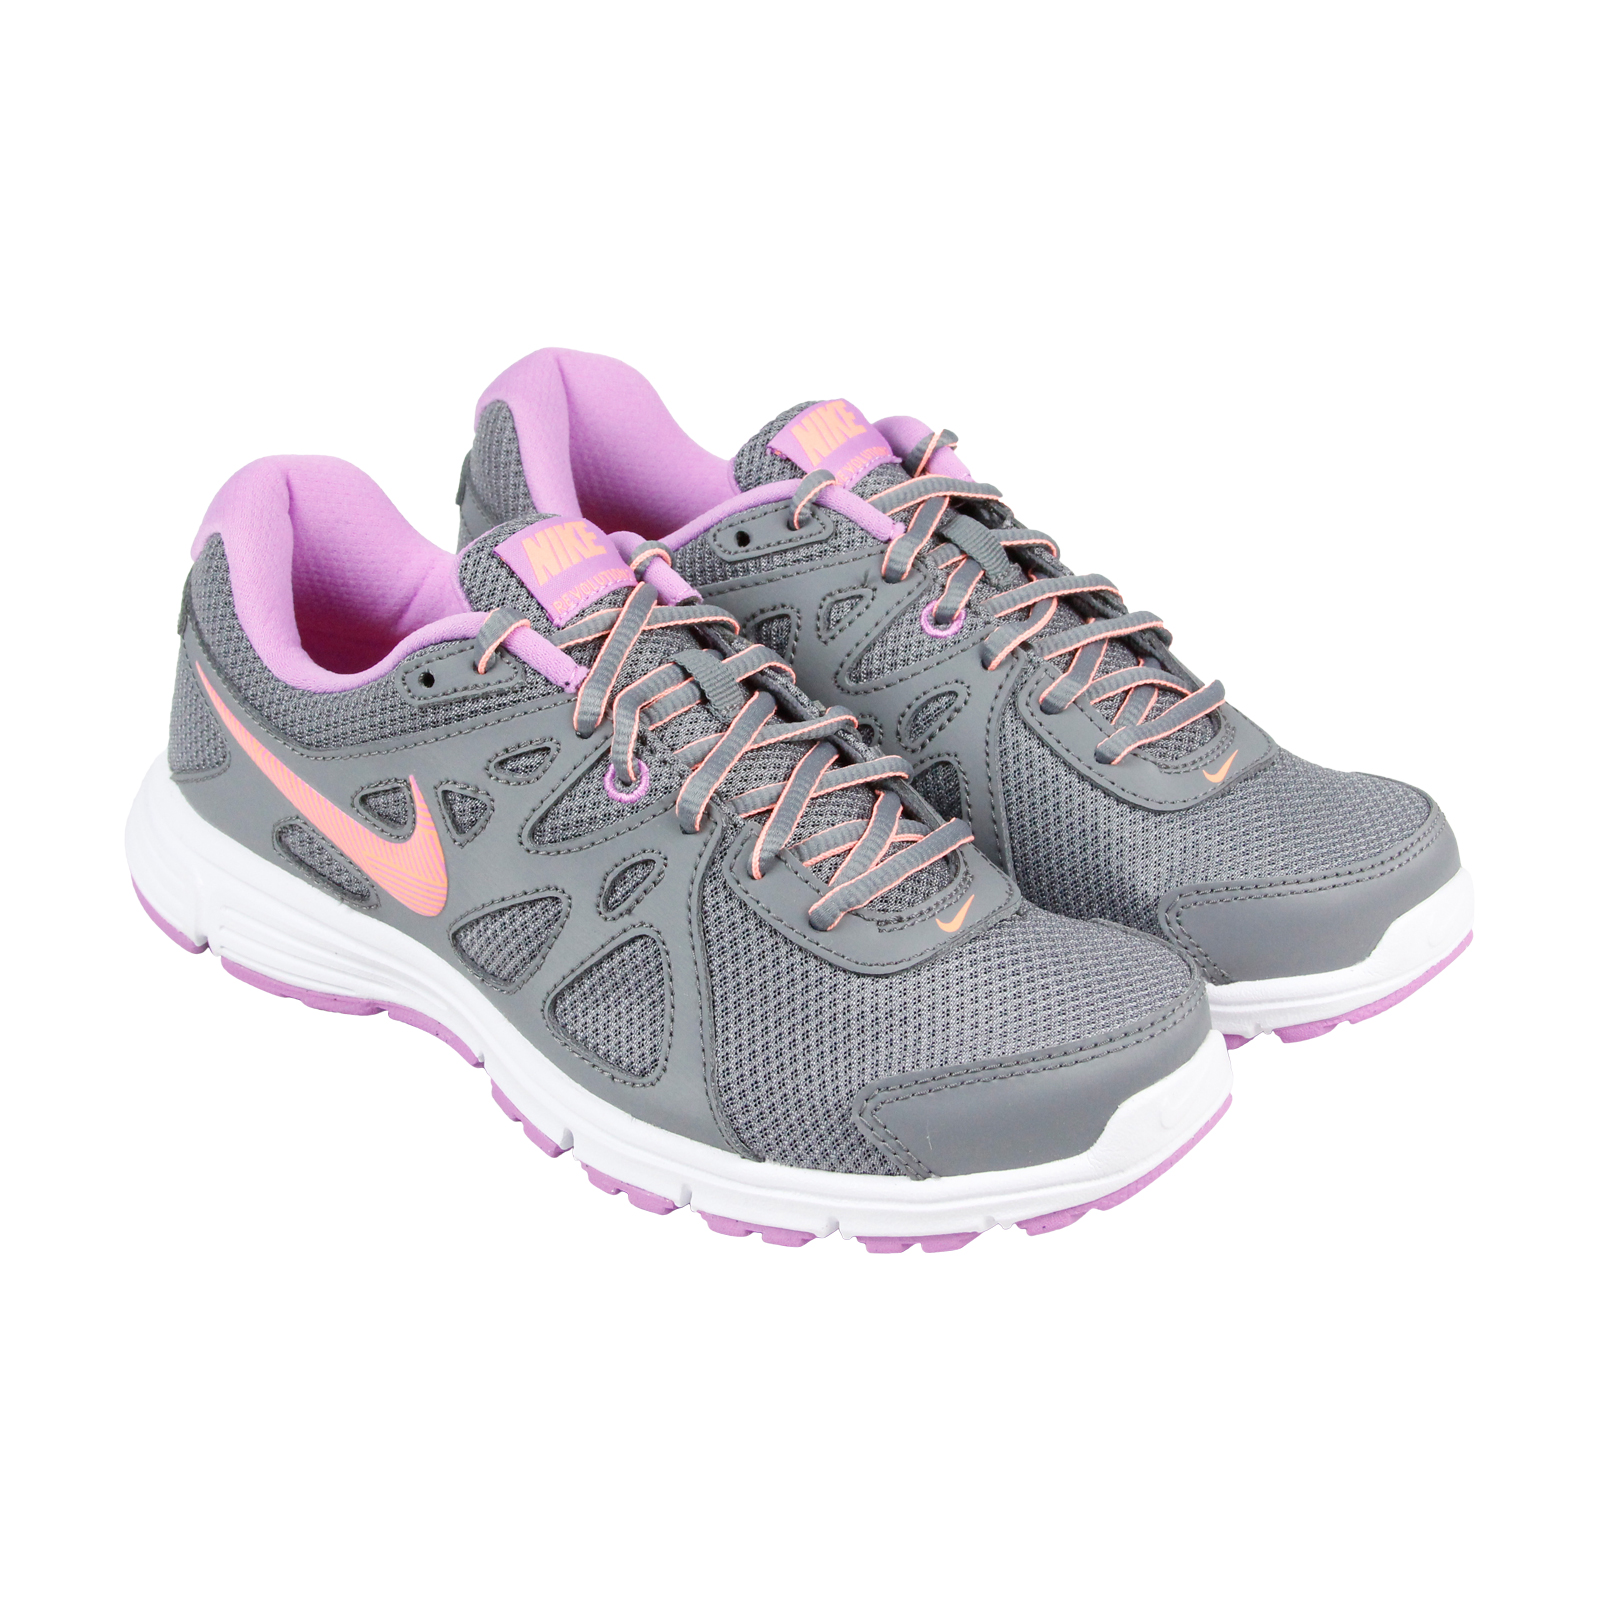 Nike Revolution 2 Womens Gray Pink Mesh & Leather Athleti...